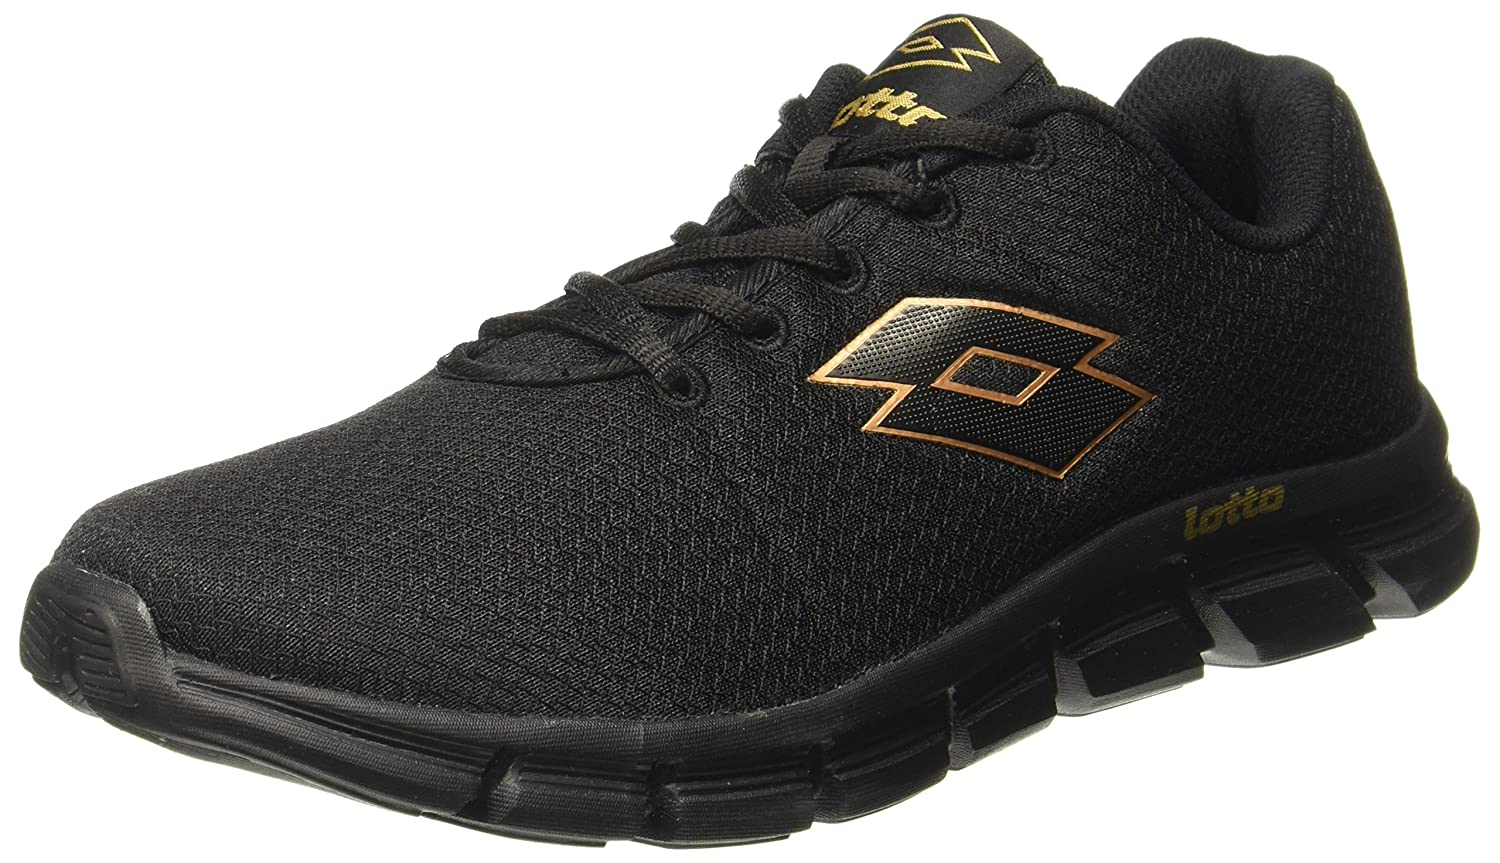 4aed73f6840a Lotto Men s Vertigo Running Shoes  Buy Online at Low Prices in India -  Amazon.in